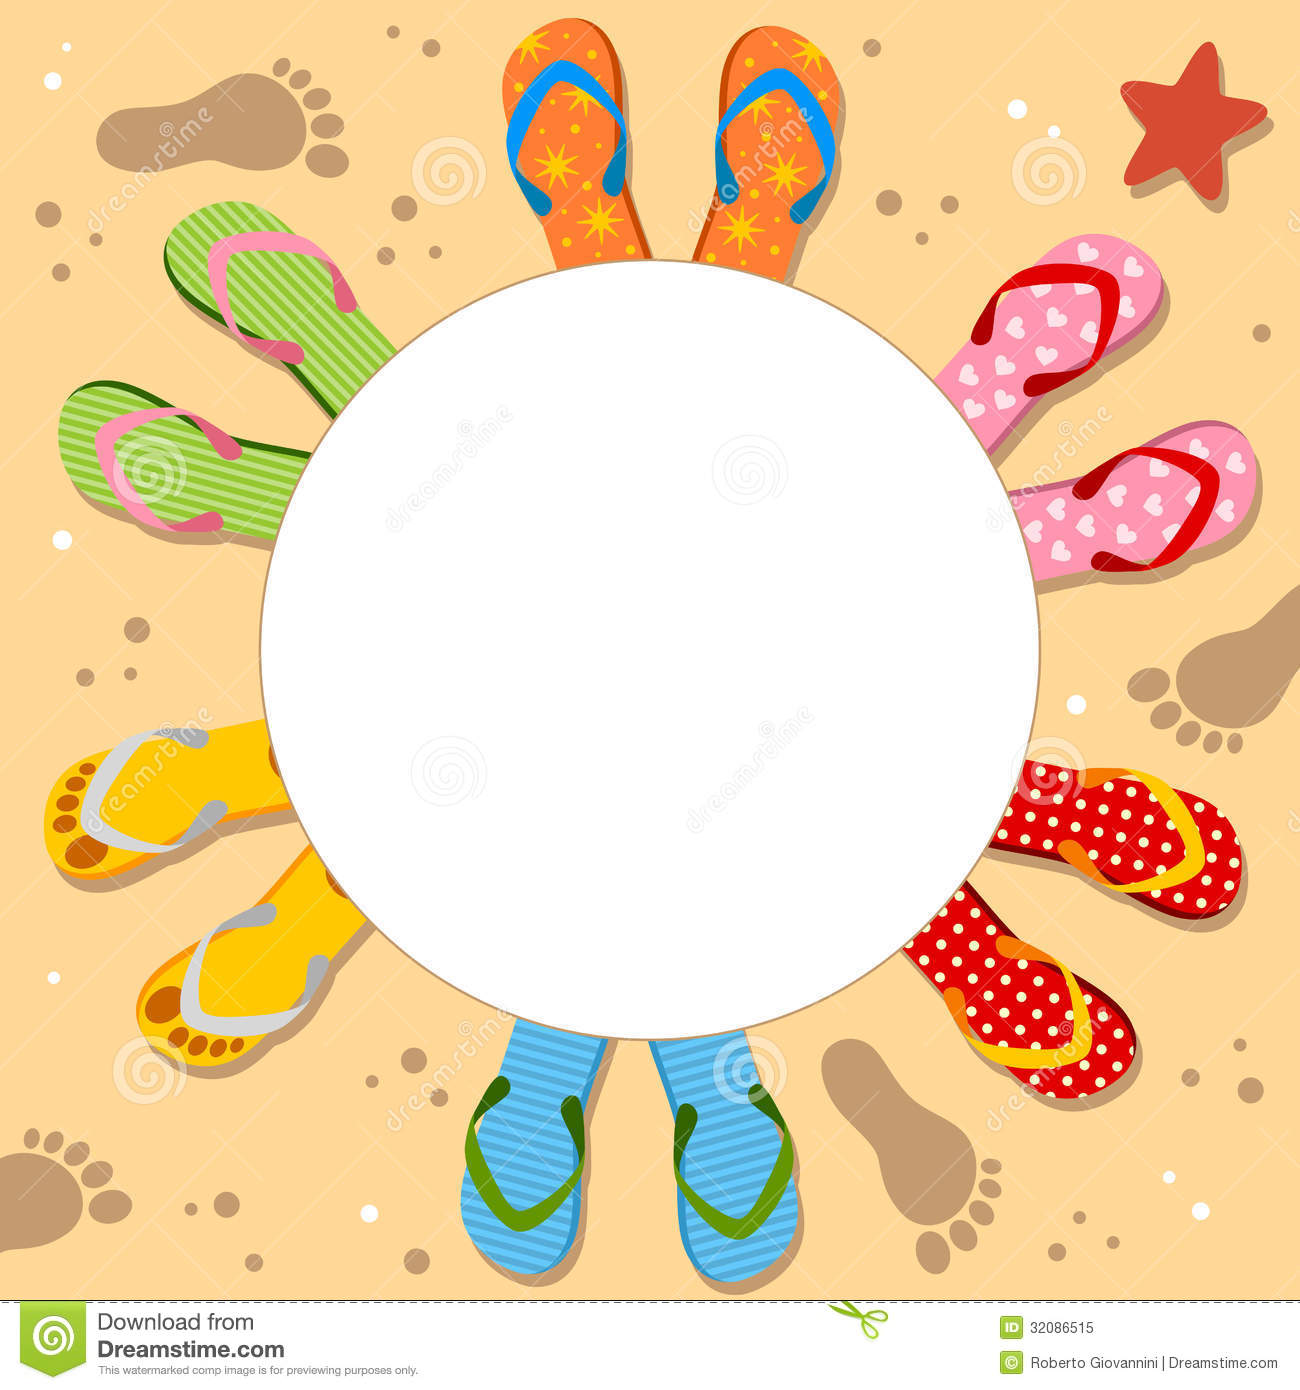 Flip Flops Holiday Photo Frame Royalty Free Stock Photo - Image ...